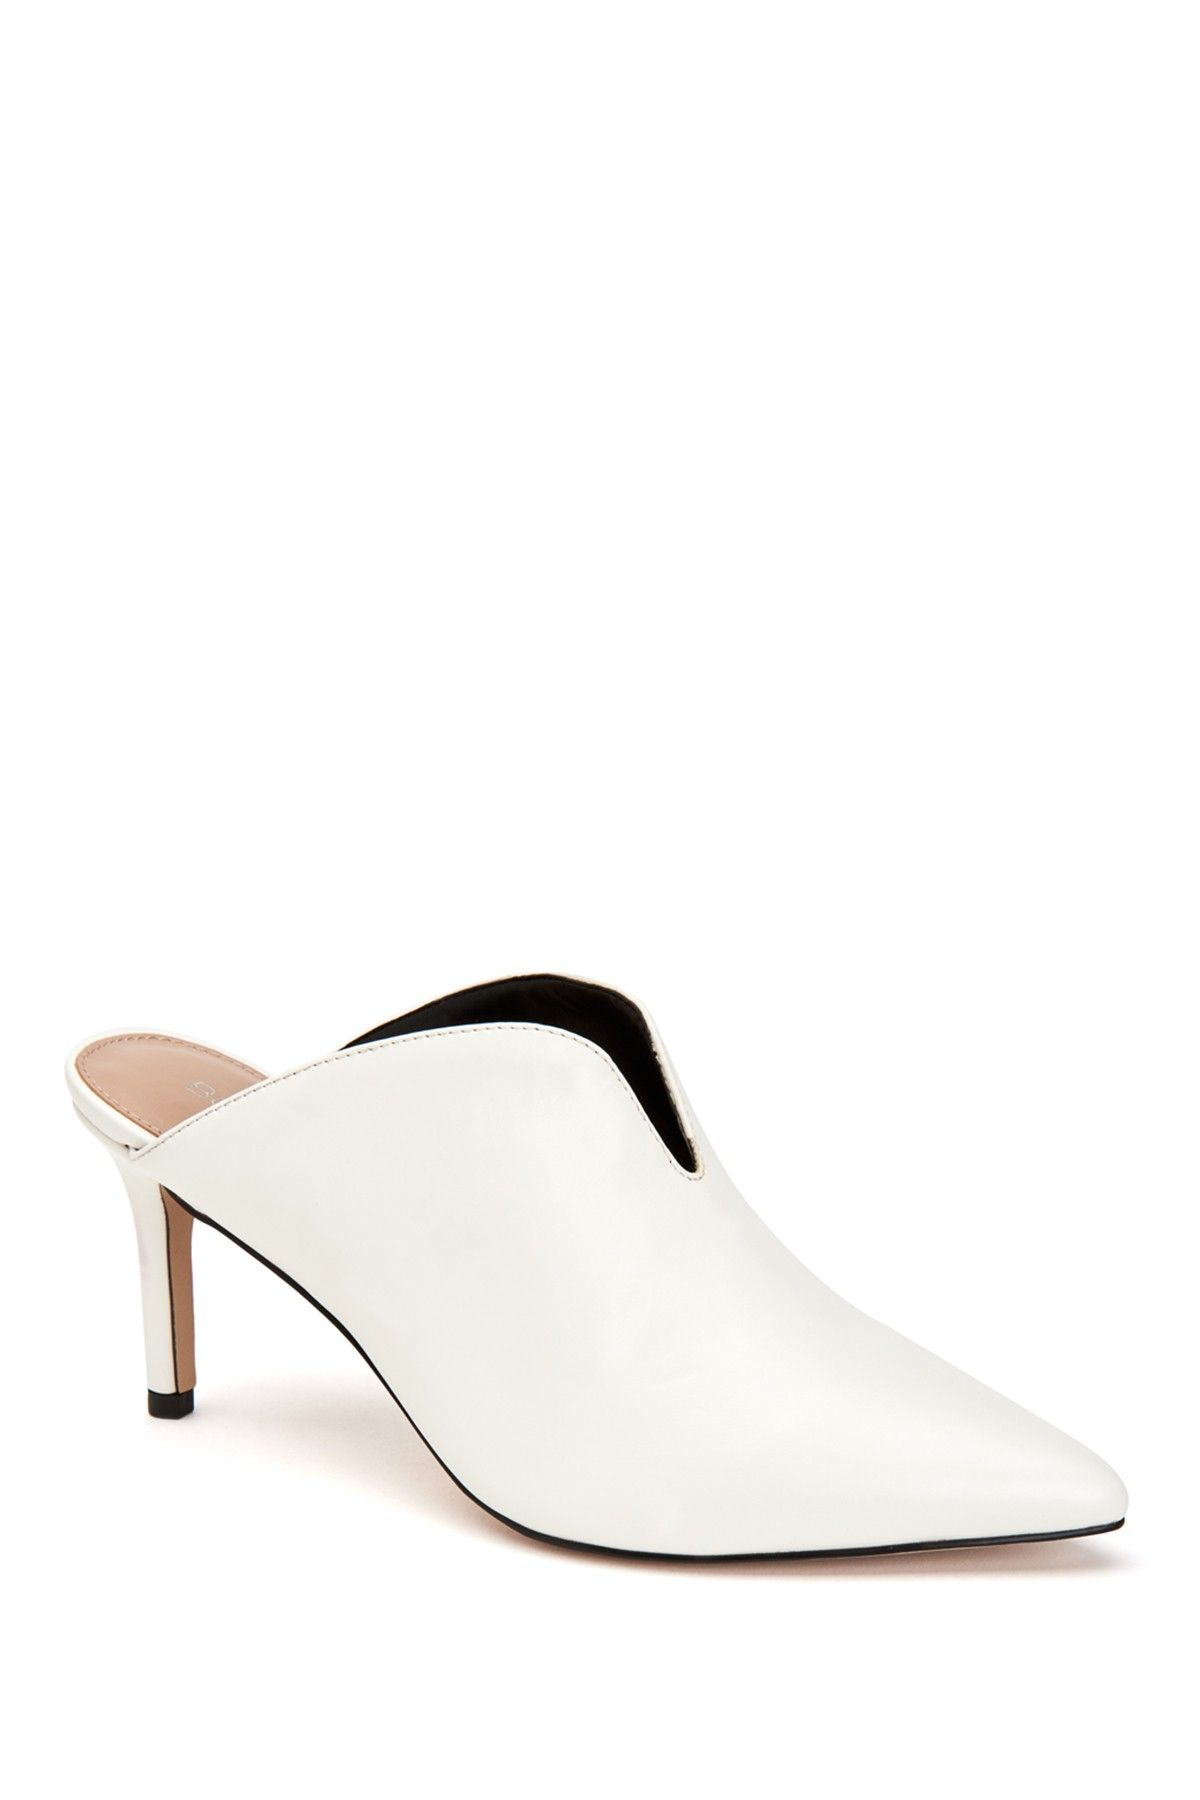 7eef97e8a30 Malena Mule by BCBGeneration on  nordstrom rack